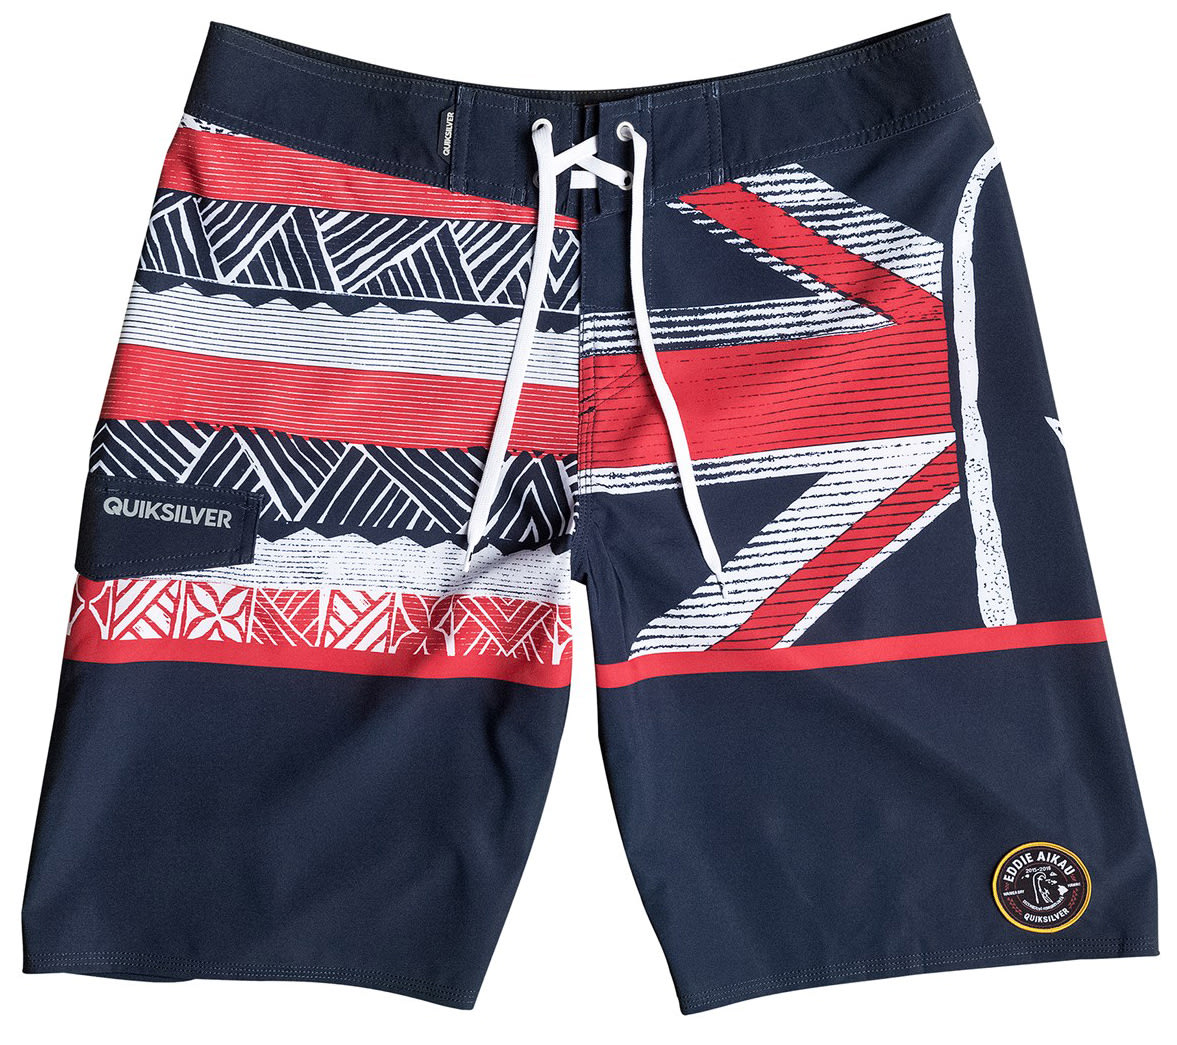 boys' board shorts If your boy loves the water, he needs a reliable set of board shorts. Board shorts are great for recreational swimming and board sports, like surfing and body boarding.